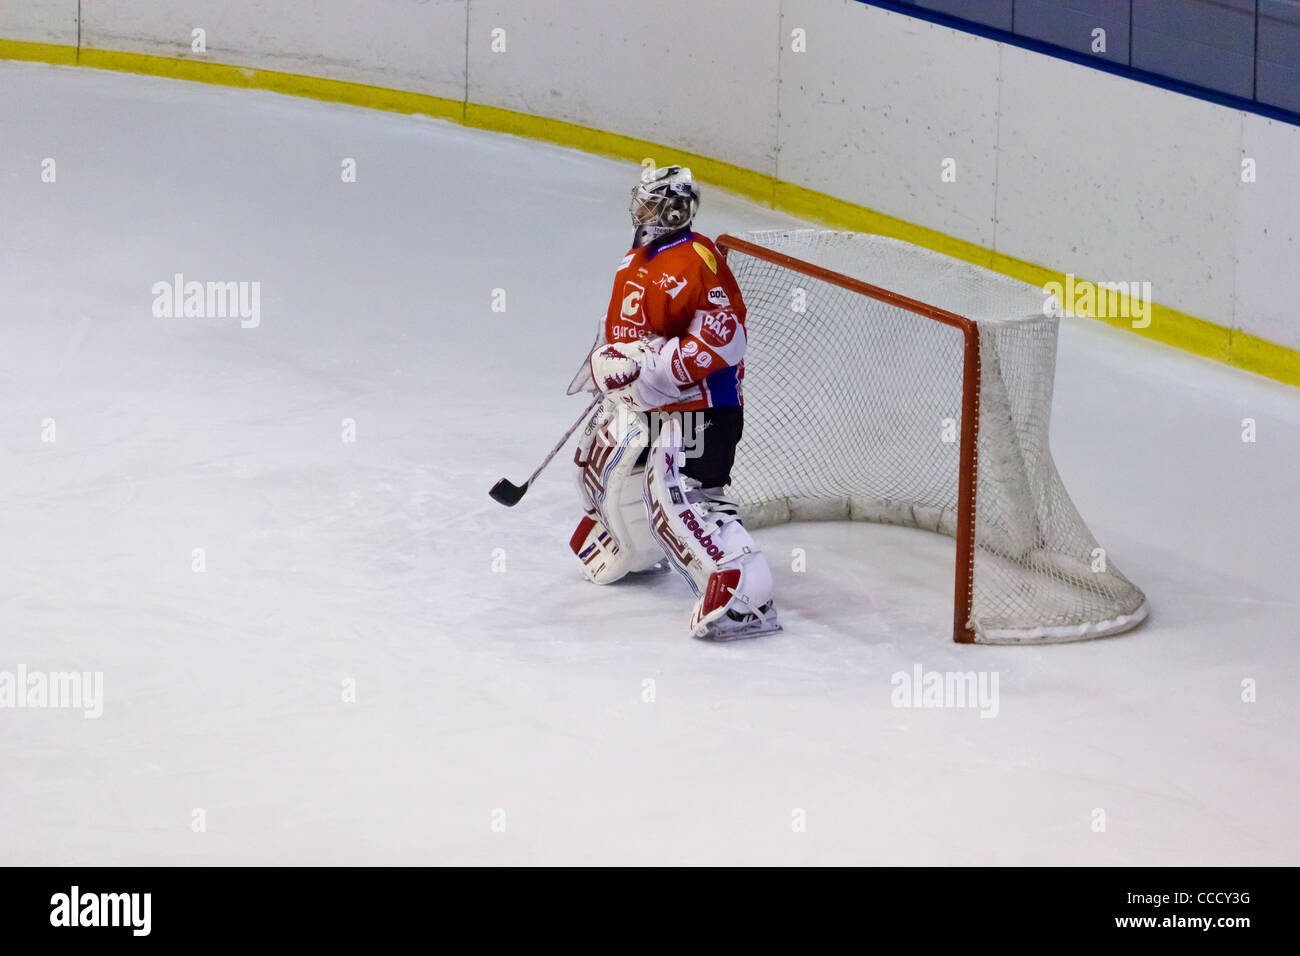 The loneliness of the goalkeeper - Stock Image